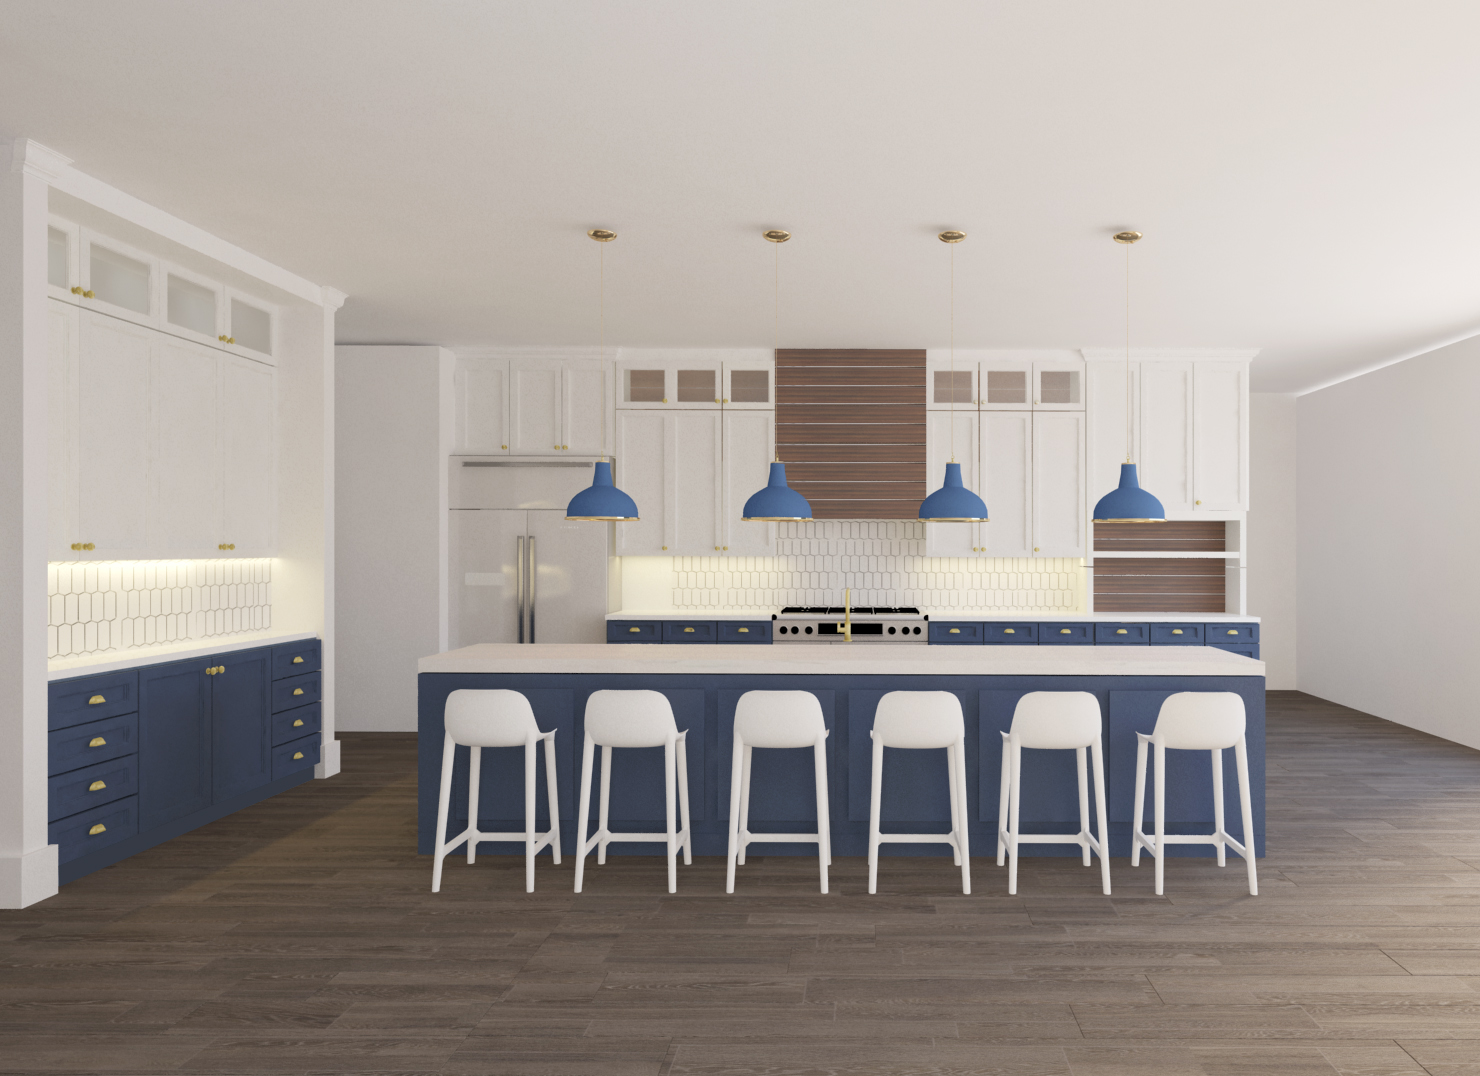 Kitchen remodel design rendering of blue and white kitchen, large island with shiplap wood hood | Designer: Carla Aston, Rendering: Shebin Poothery #kitchendesign #blueandwhitekitchen